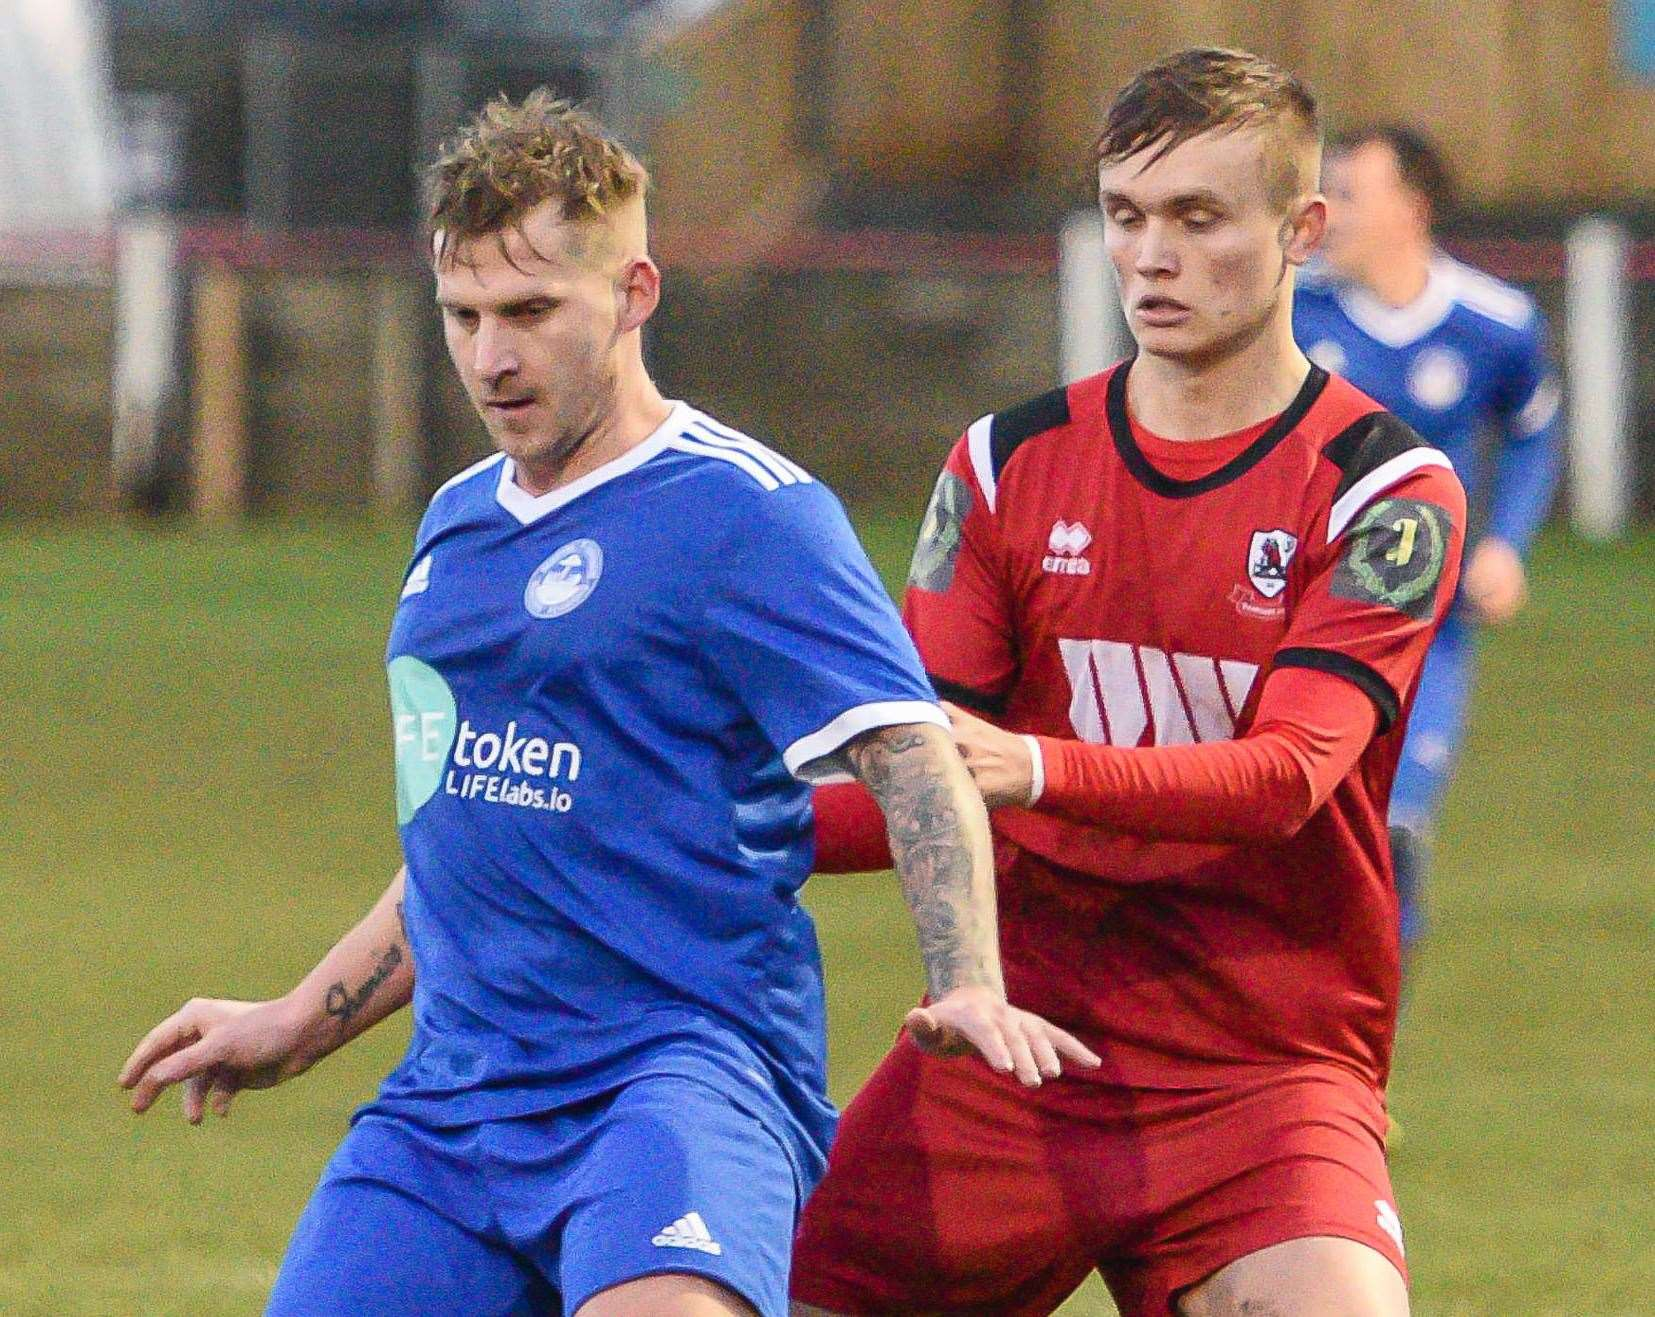 Hythe Town midfielder Danny Walder (blue shirt) Picture: Alan Langley